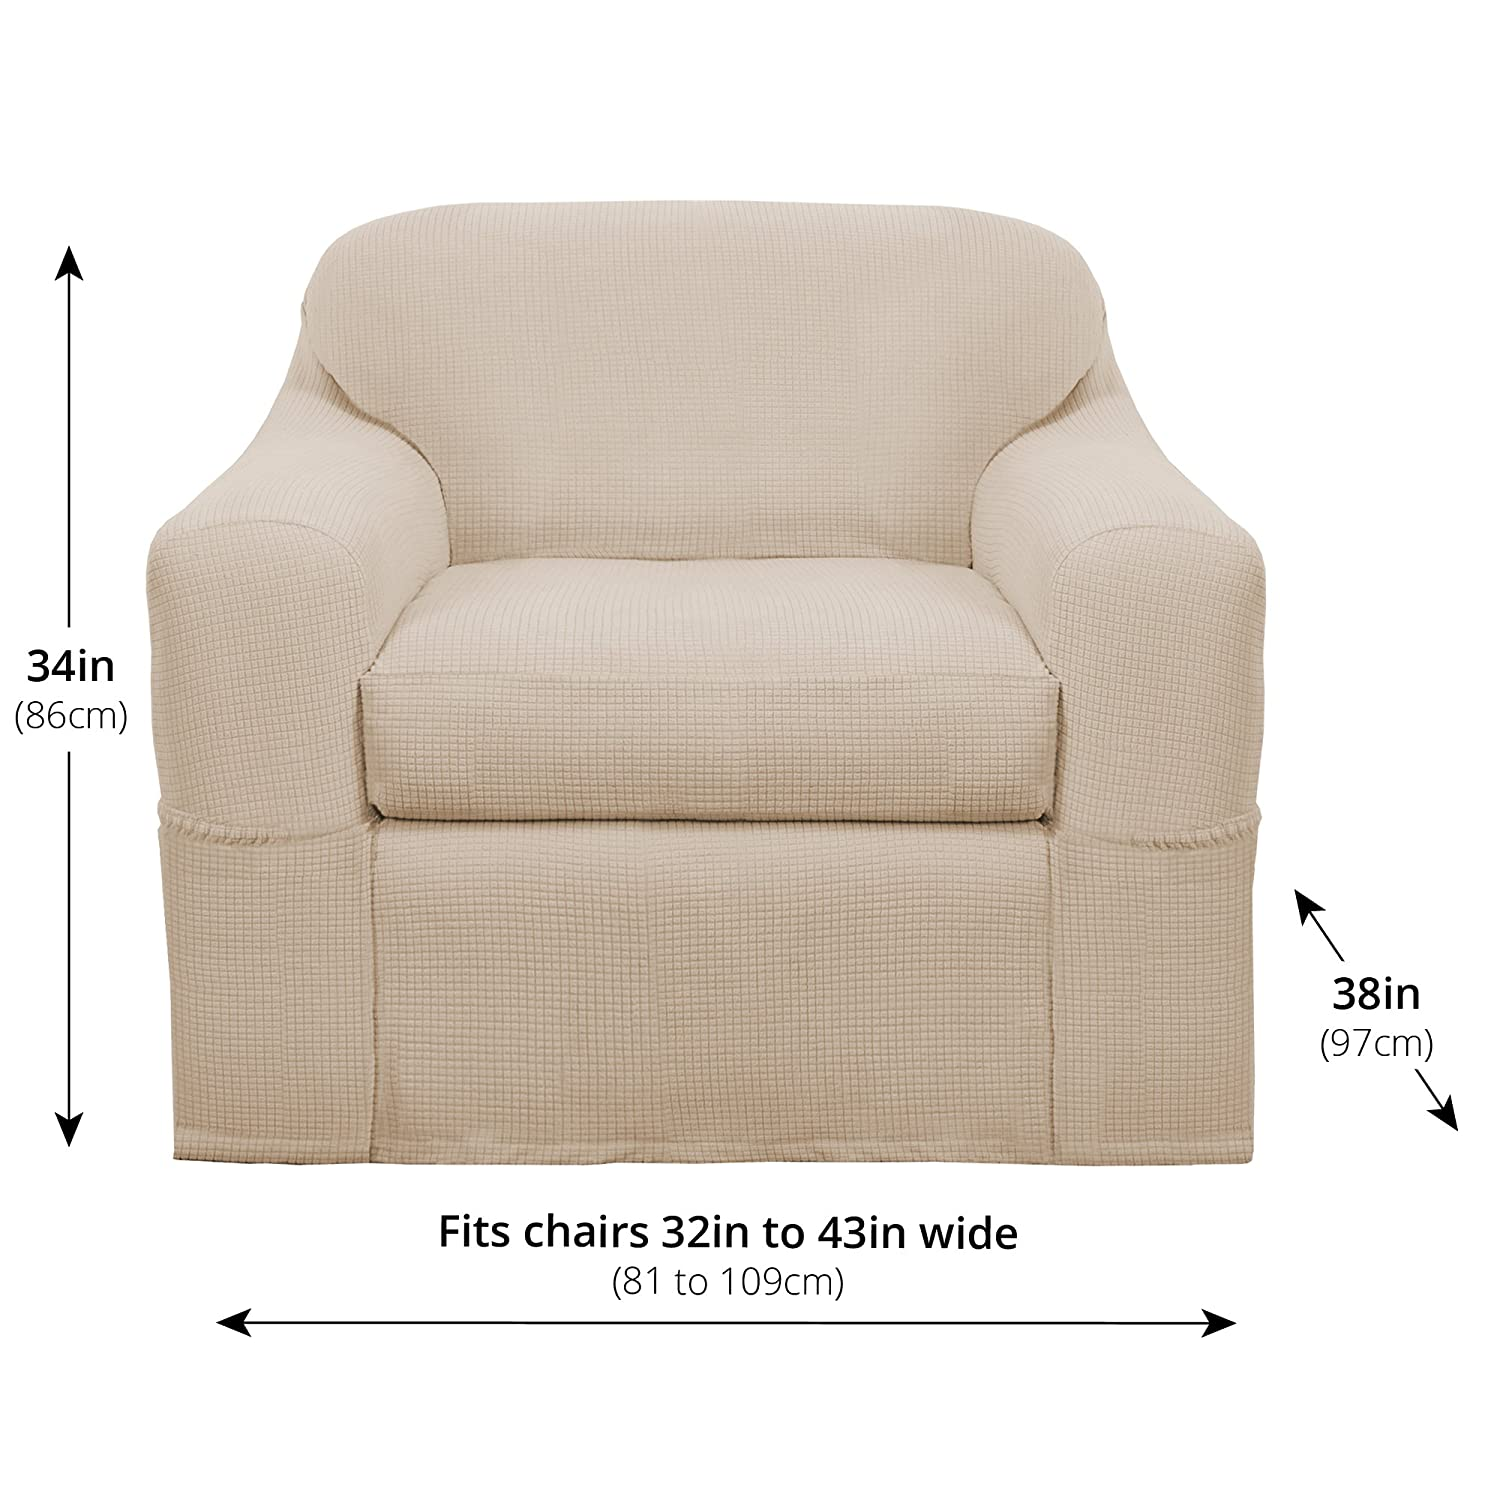 Furniture covers for chairs Chair Slipcovers Amazoncom Maytex Reeves Stretch Piece Arm Chair Furniture Cover Slipcover Natural White Home Kitchen West Elm Amazoncom Maytex Reeves Stretch Piece Arm Chair Furniture Cover